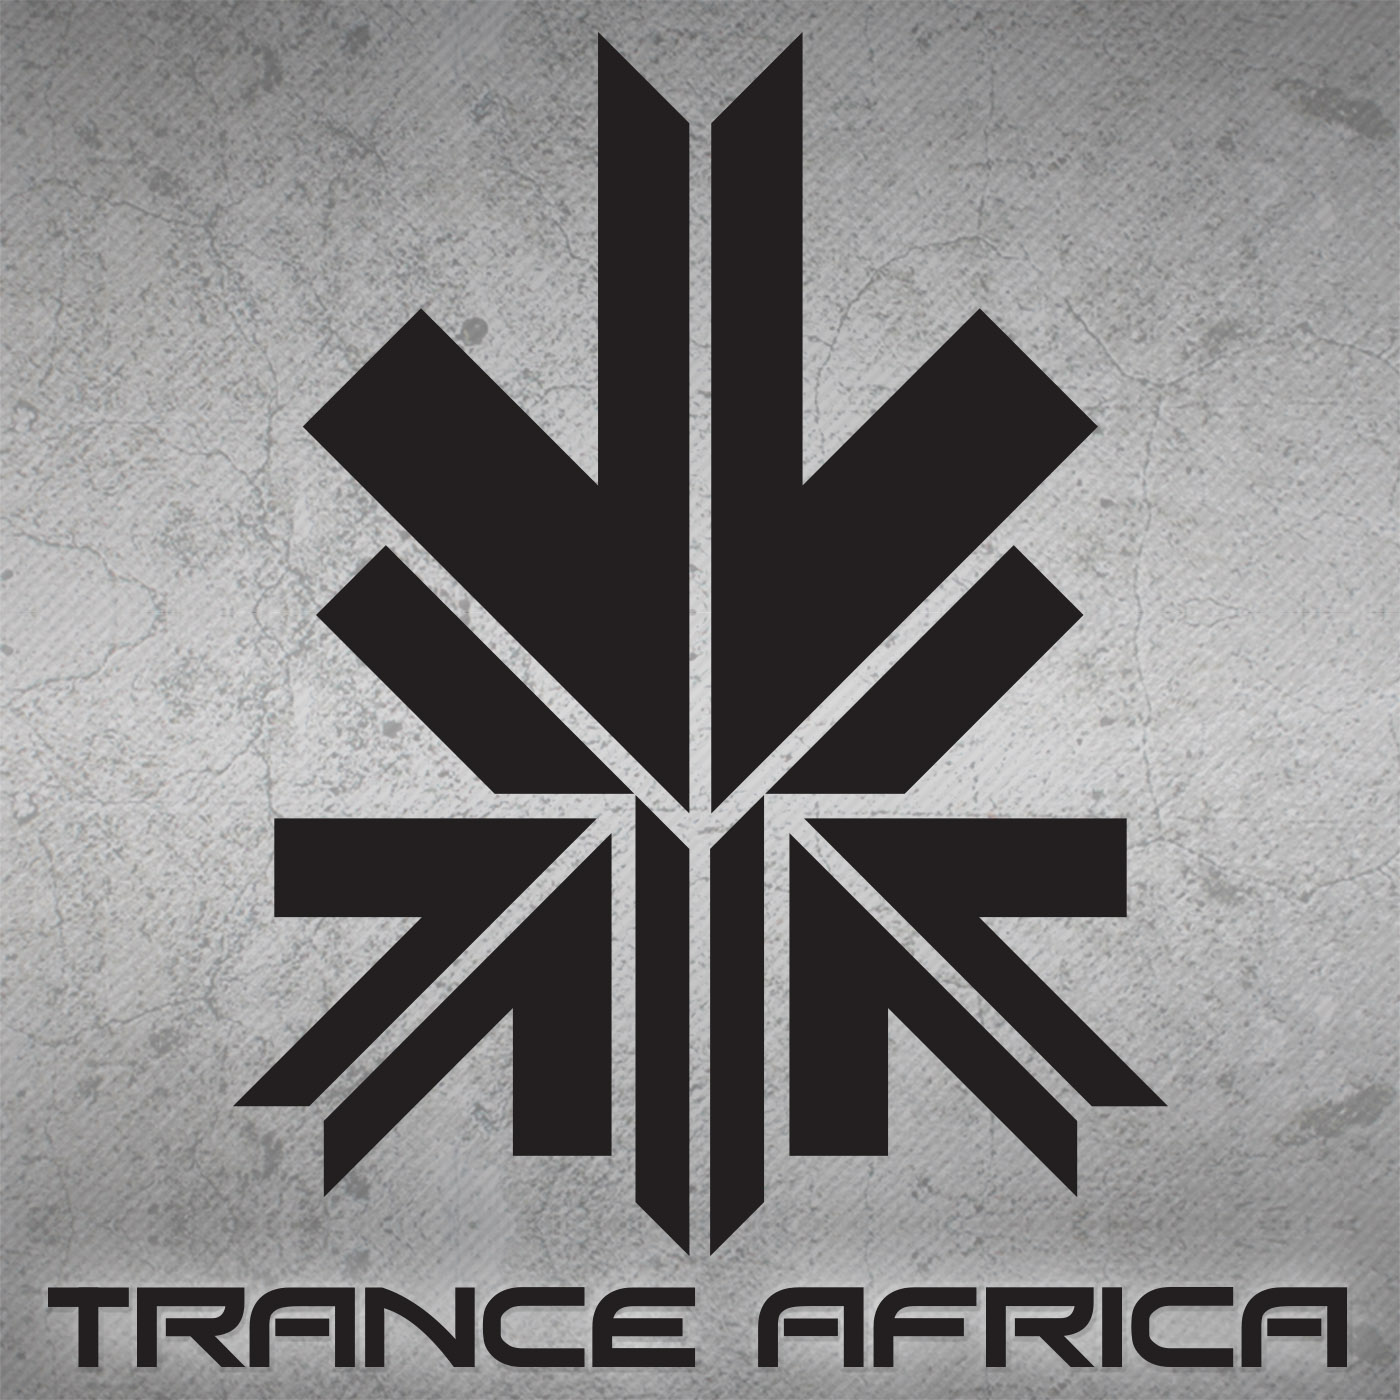 Trance Africa